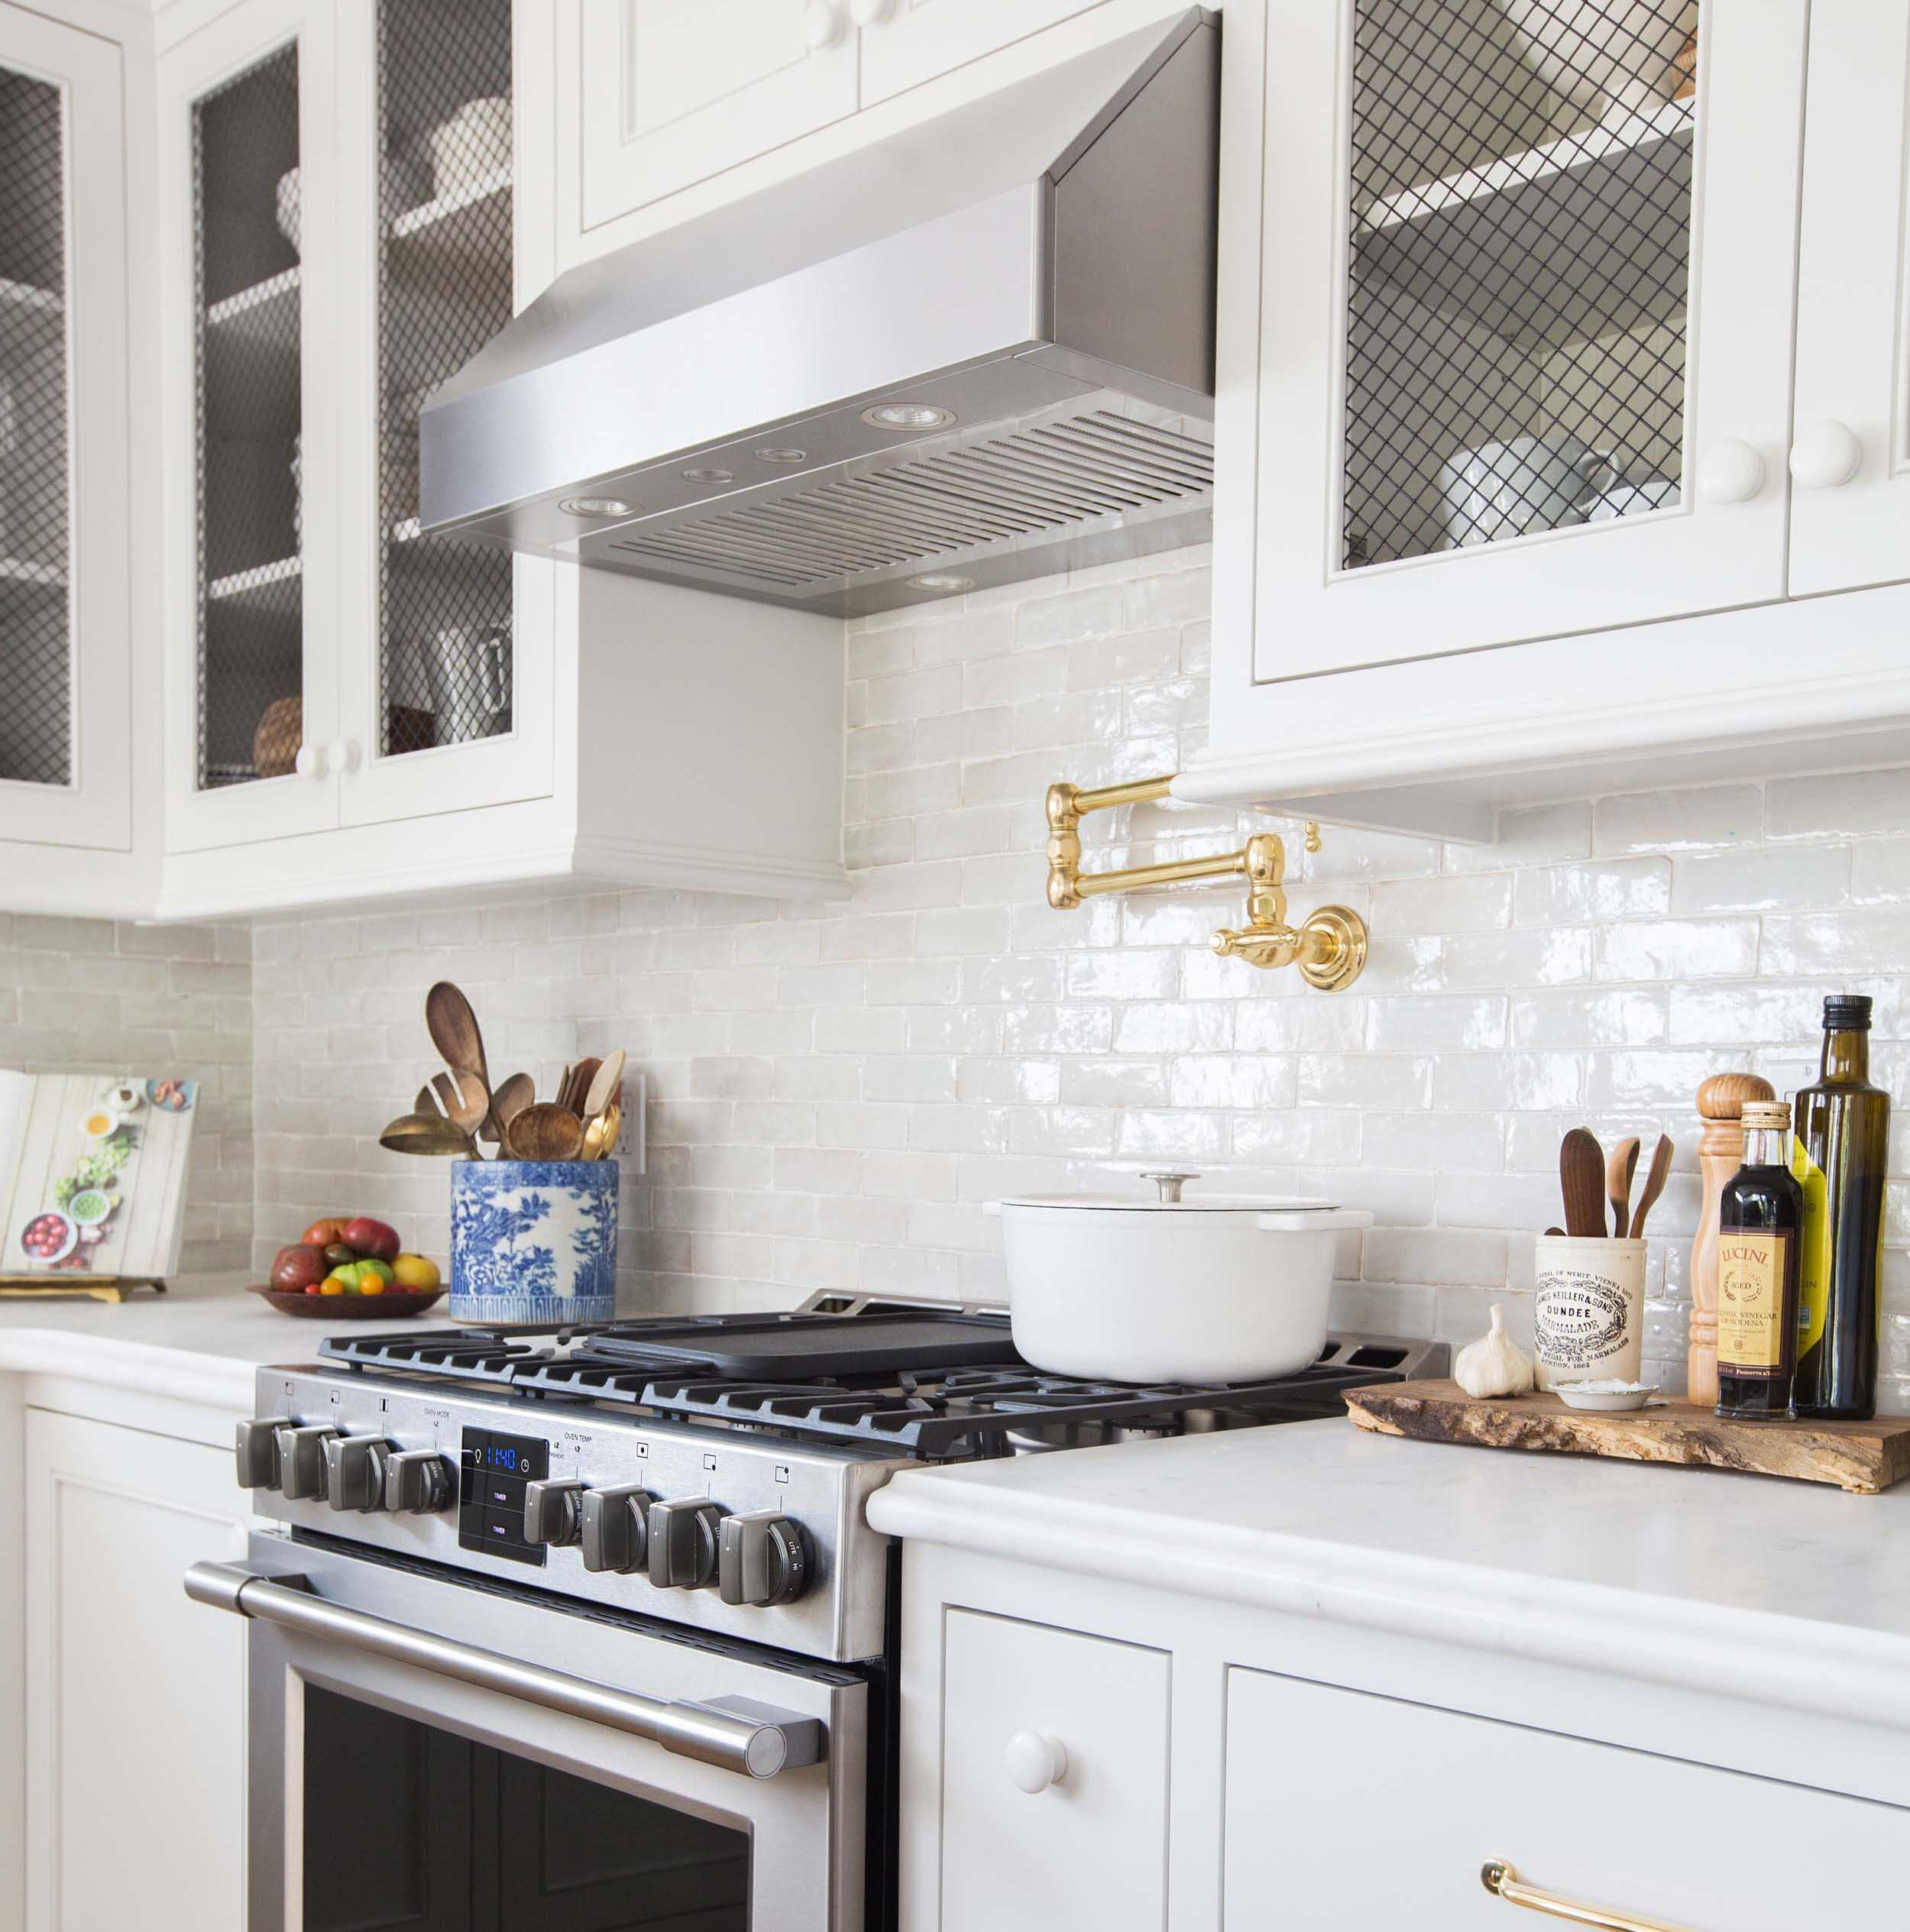 A stainless steel kitchen hood flanked by chicken wire cabinets stands over a glossy white linear tiled backsplash accented with an antique brass